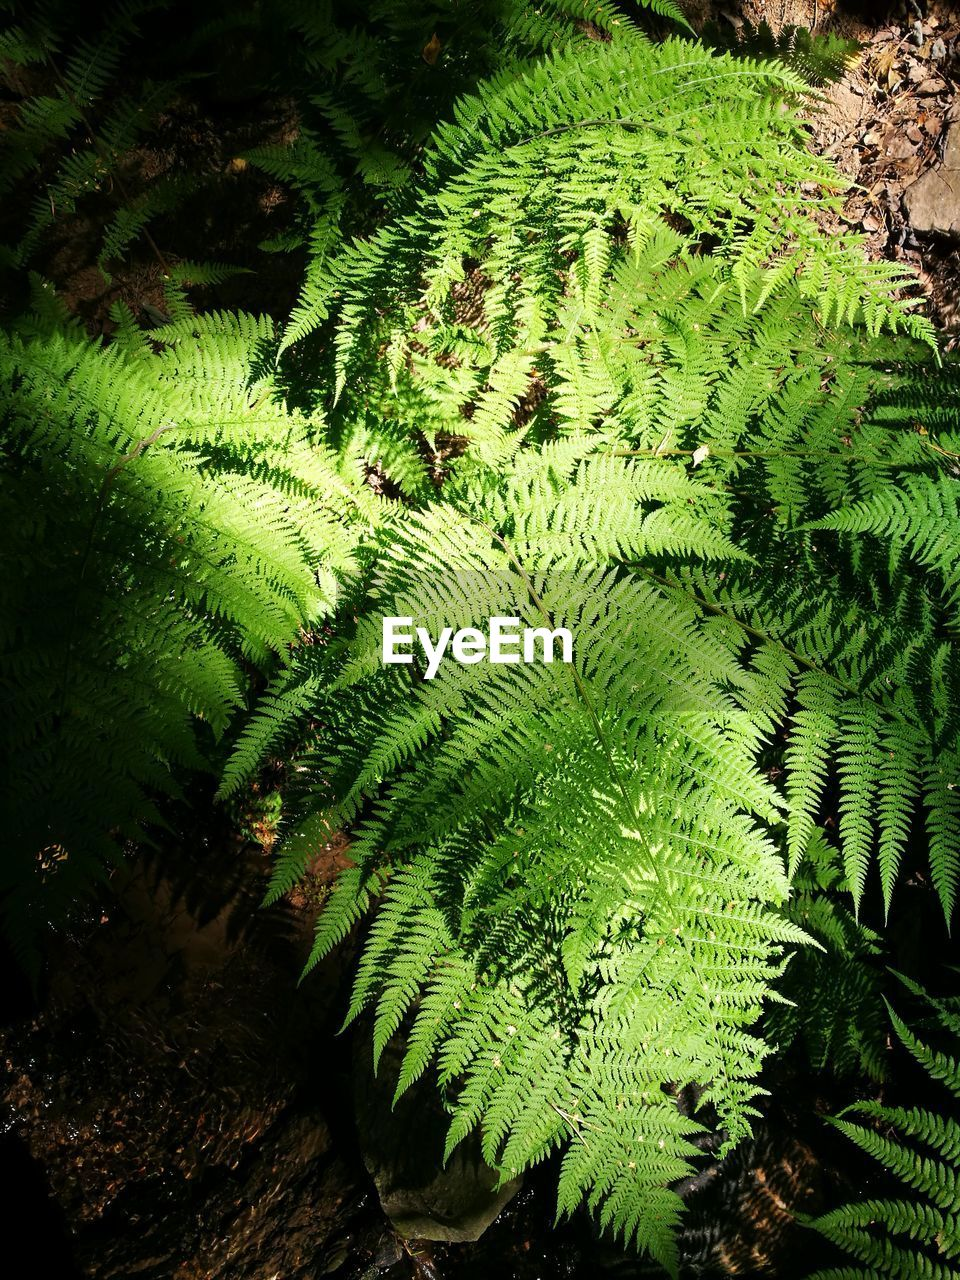 plant, growth, green color, beauty in nature, nature, leaf, fern, plant part, no people, day, tree, close-up, tranquility, high angle view, green, outdoors, land, forest, foliage, sunlight, leaves